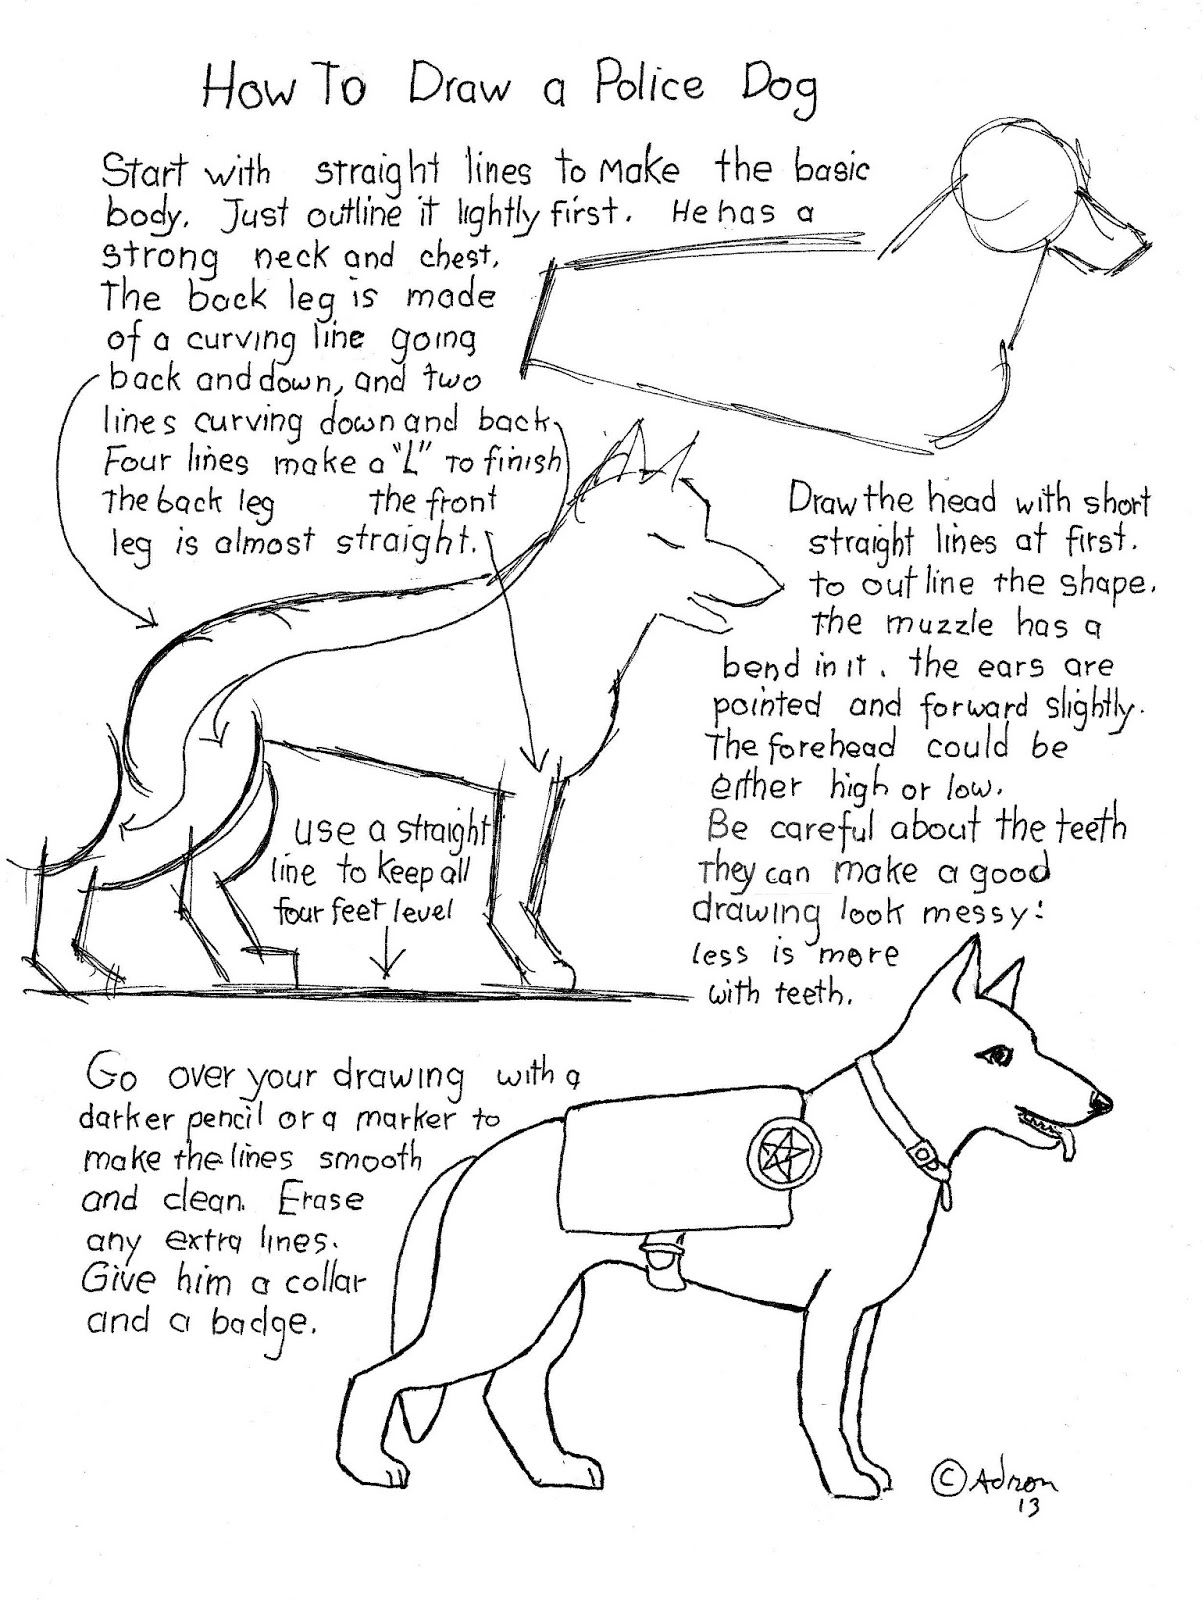 how to draw a police dog 9 dog coloring pages jpg ai illustrator download a draw police dog how to